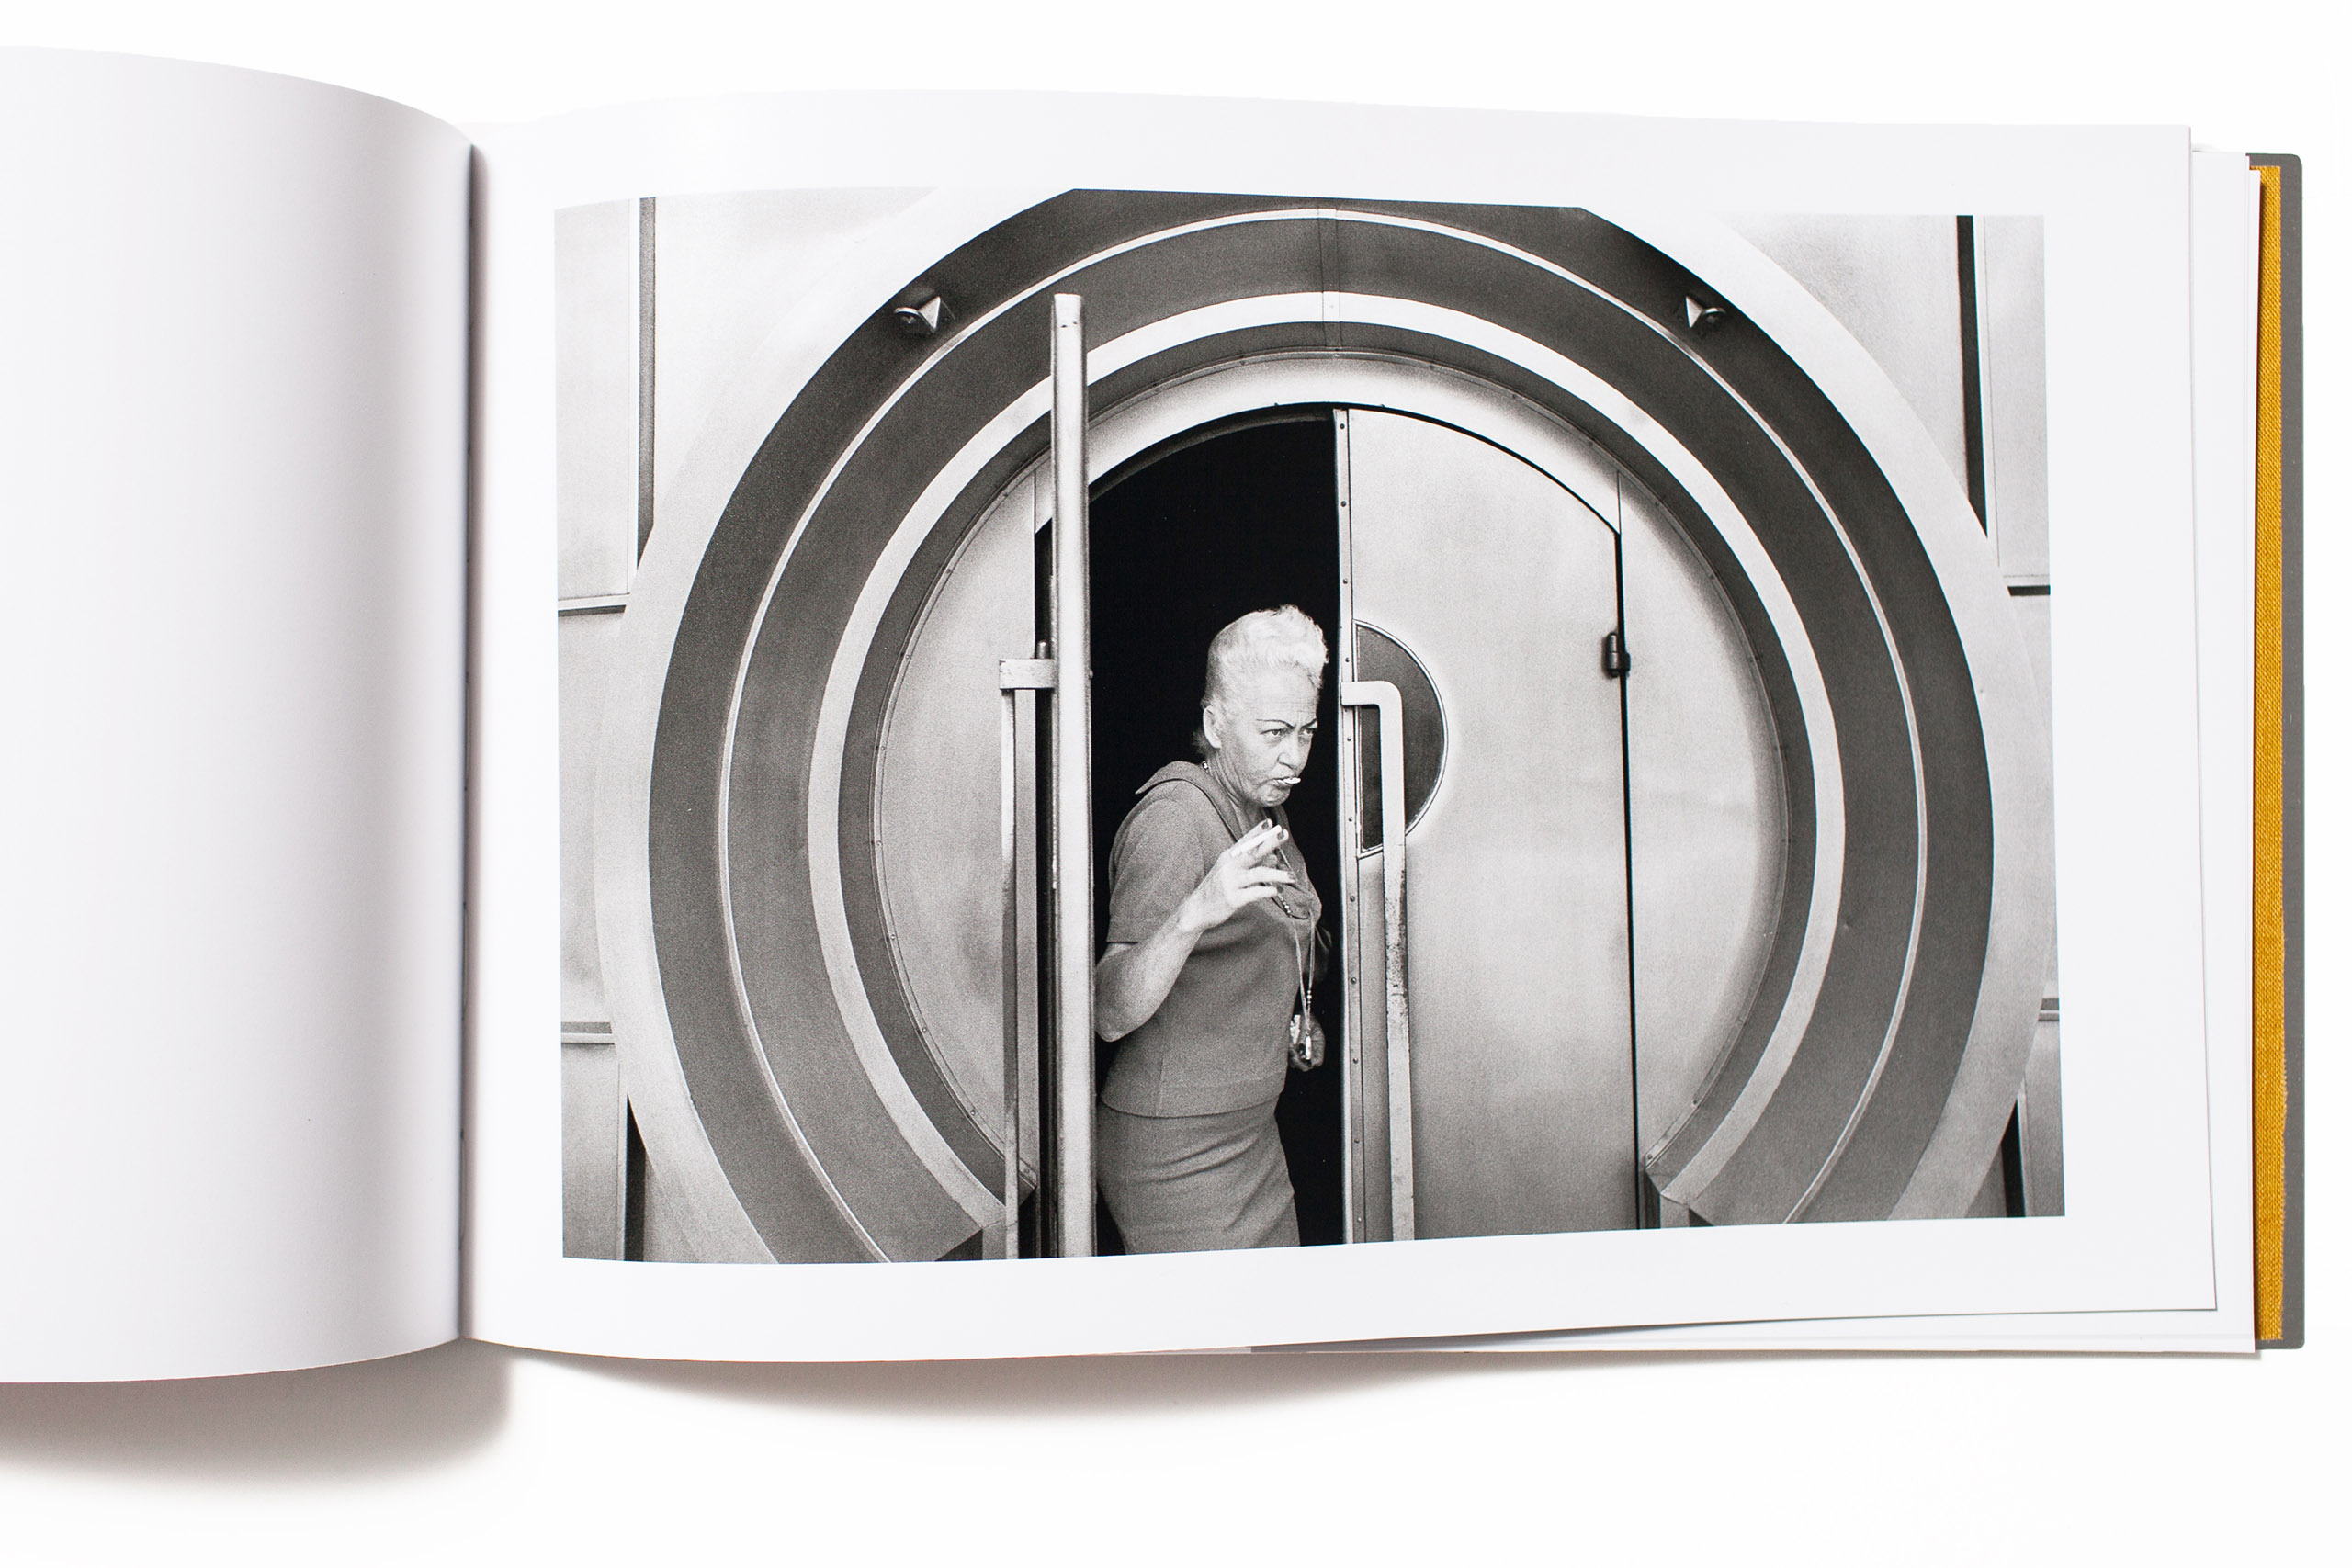 How can a book comprised of twelve images of something so ordinary as people exiting a door in Los Angeles (that looks oddly at first like a bank vault) captivate interest and validate itself as a book? Anthony Hernandez's LA, 1971 is a prime example. Is this an early work by the artist inspired and based in conceptualism or simply a string of images that share common elements and form? L.A. 1971 is a surprising and beautiful find from The Silas Finch Foundation.                                                               -Jeffery Ladd, photographer, writer and publisher of Errata Editions.